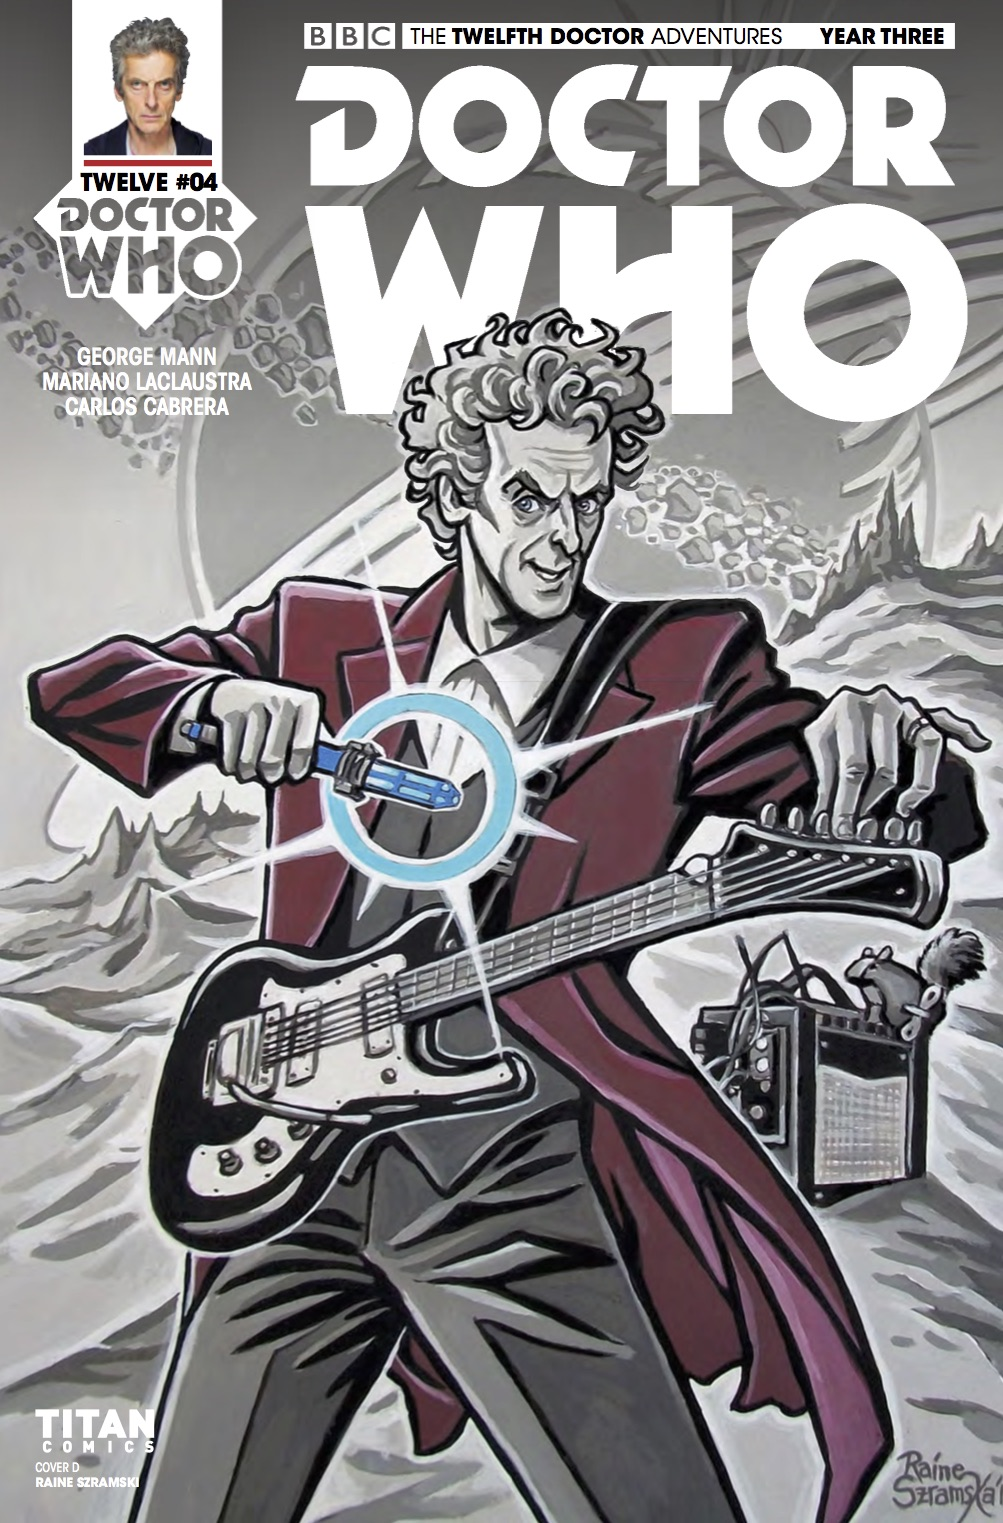 Doctor Who: Twelfth Doctor Year 3 #4​ - Cover D (Credit: Titan / Raine Szramski)